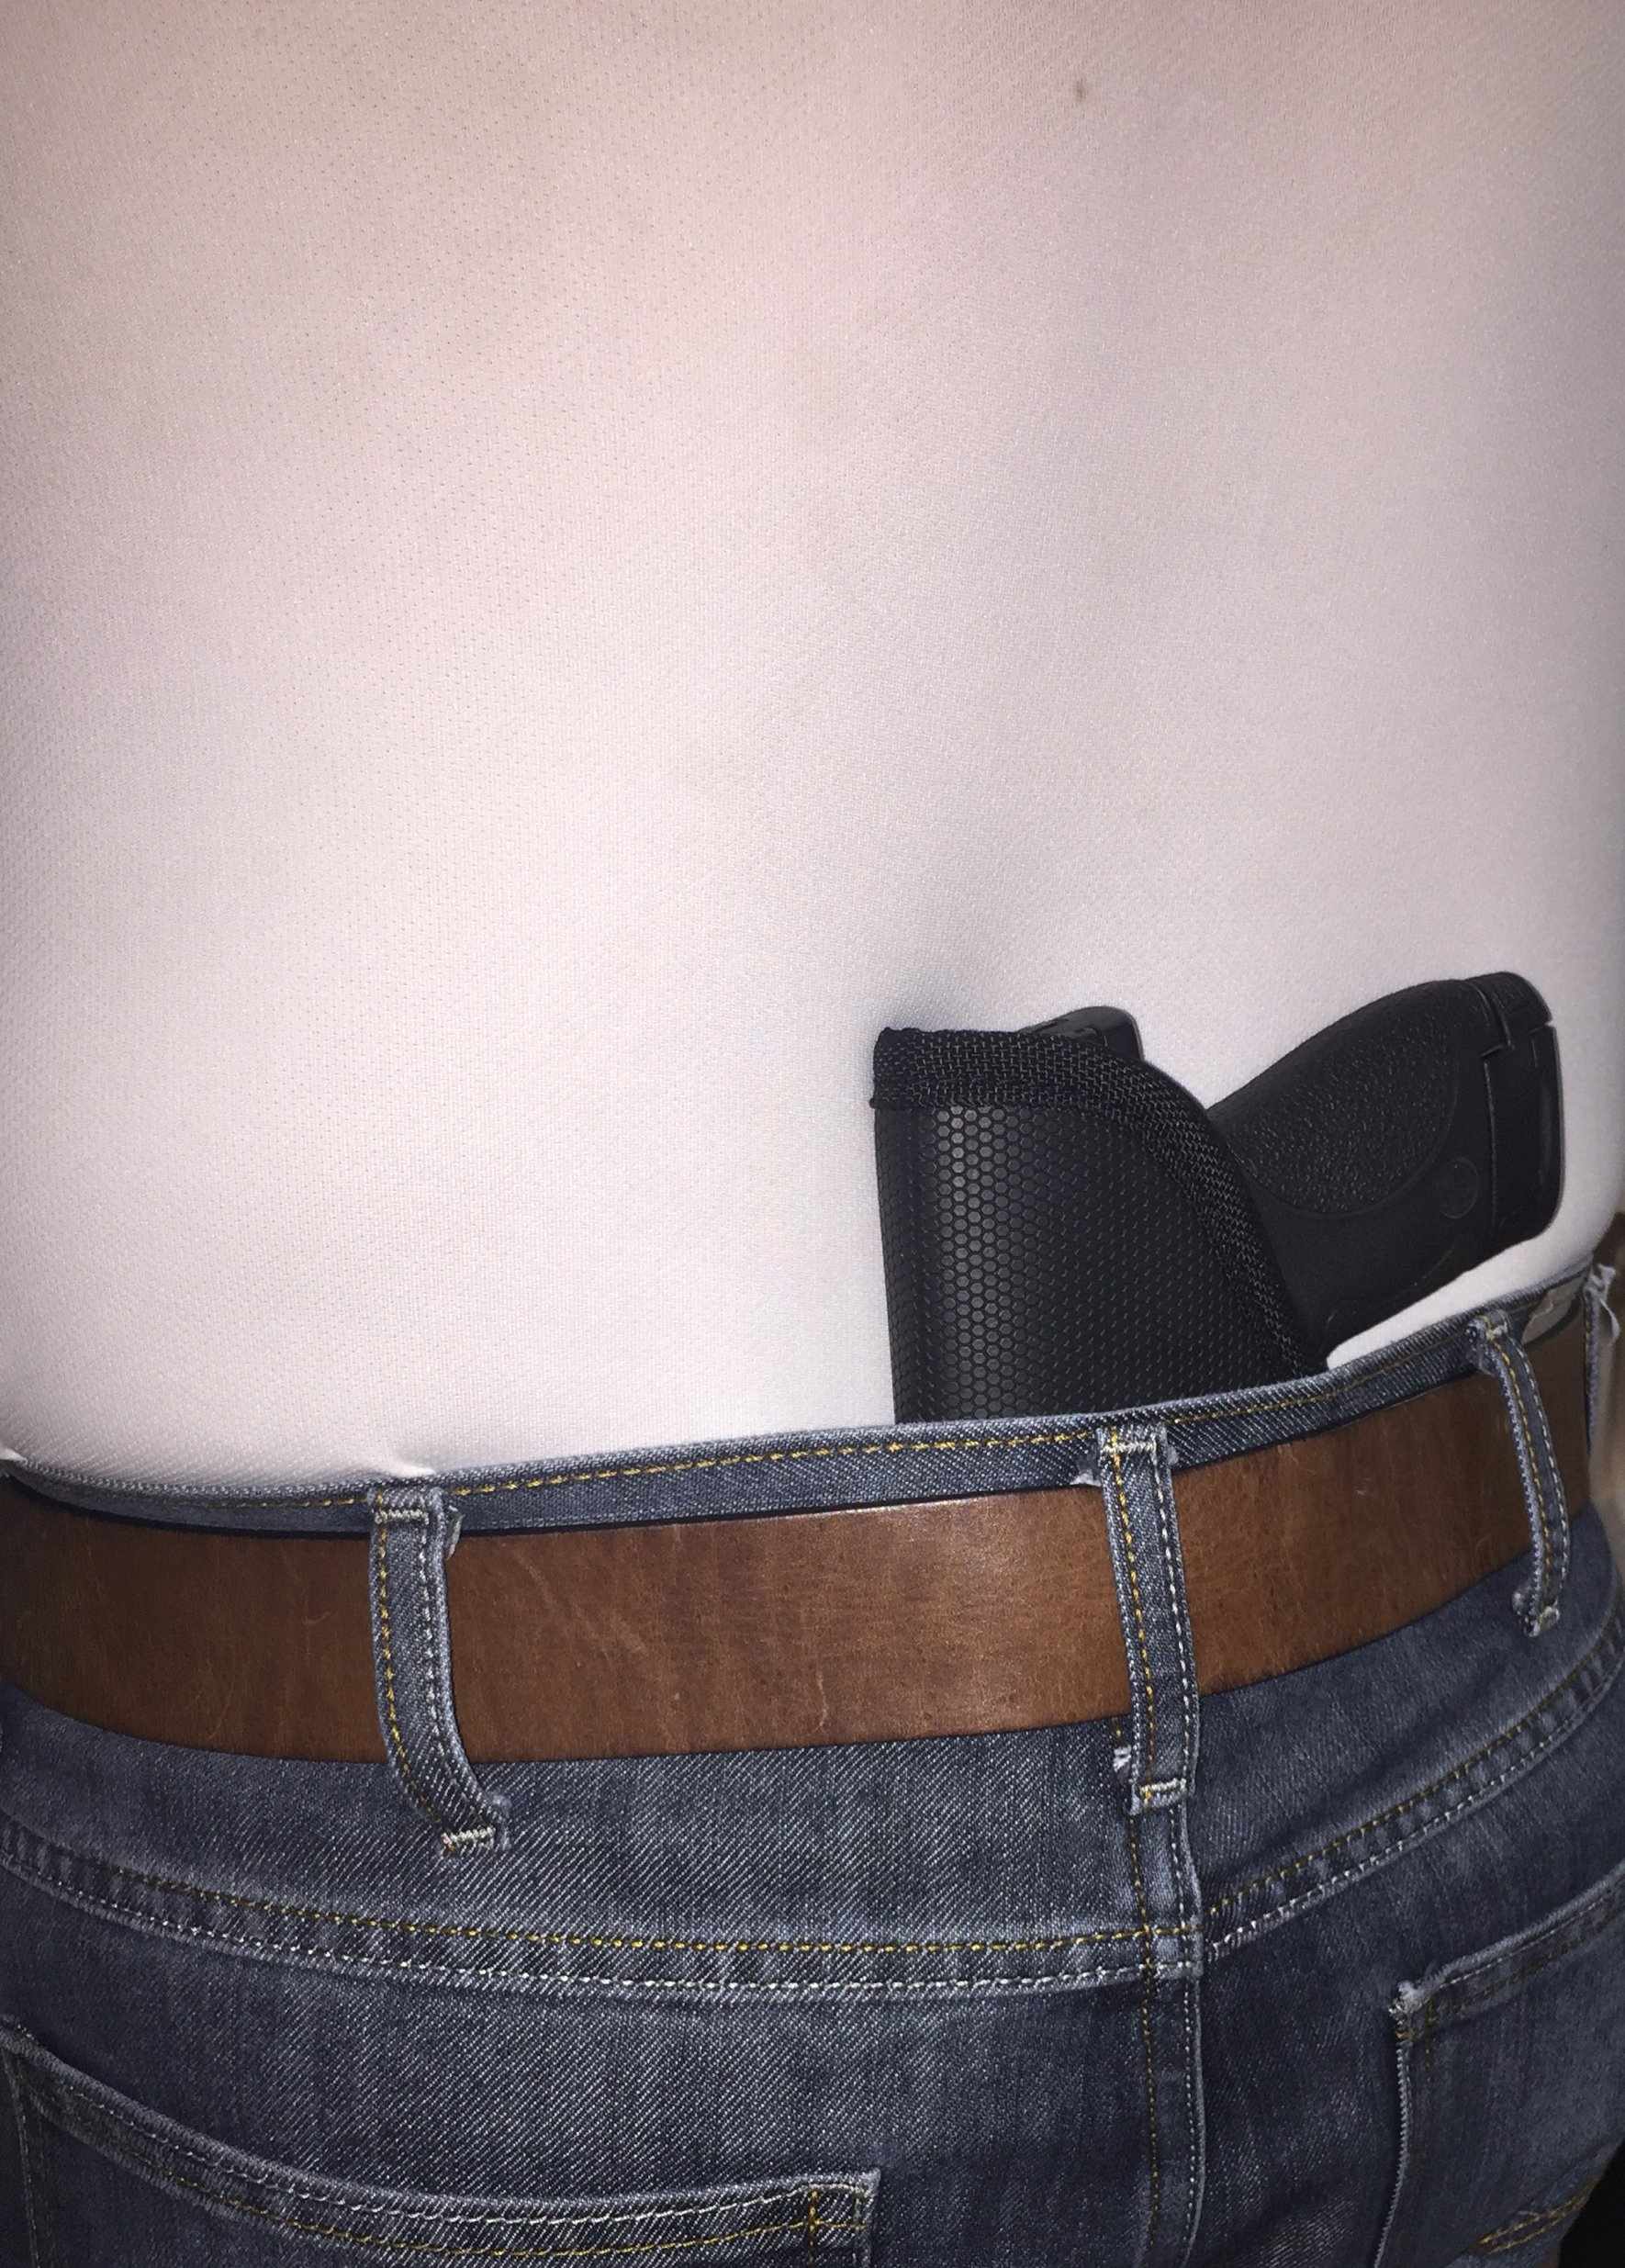 Pro-Tech Outdoors GRIPPER Concealed Inside The Paints Gun Holster For All small frame 380